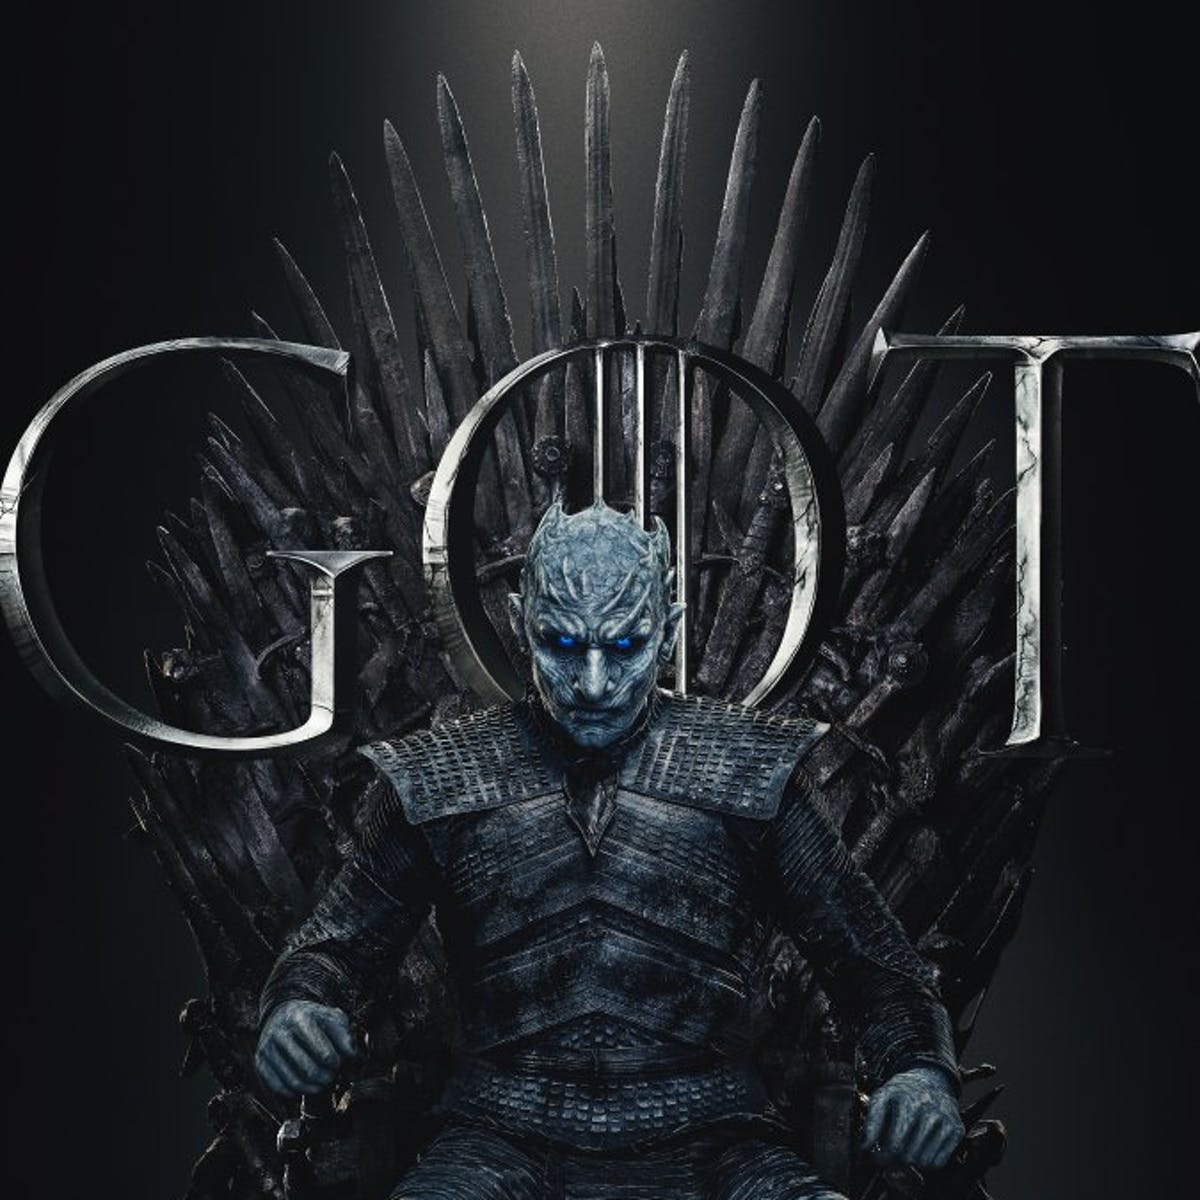 Game of Thrones: Season 8 - Episode 3 Predictions & Follow Up Friday - The Battle of Winterfell